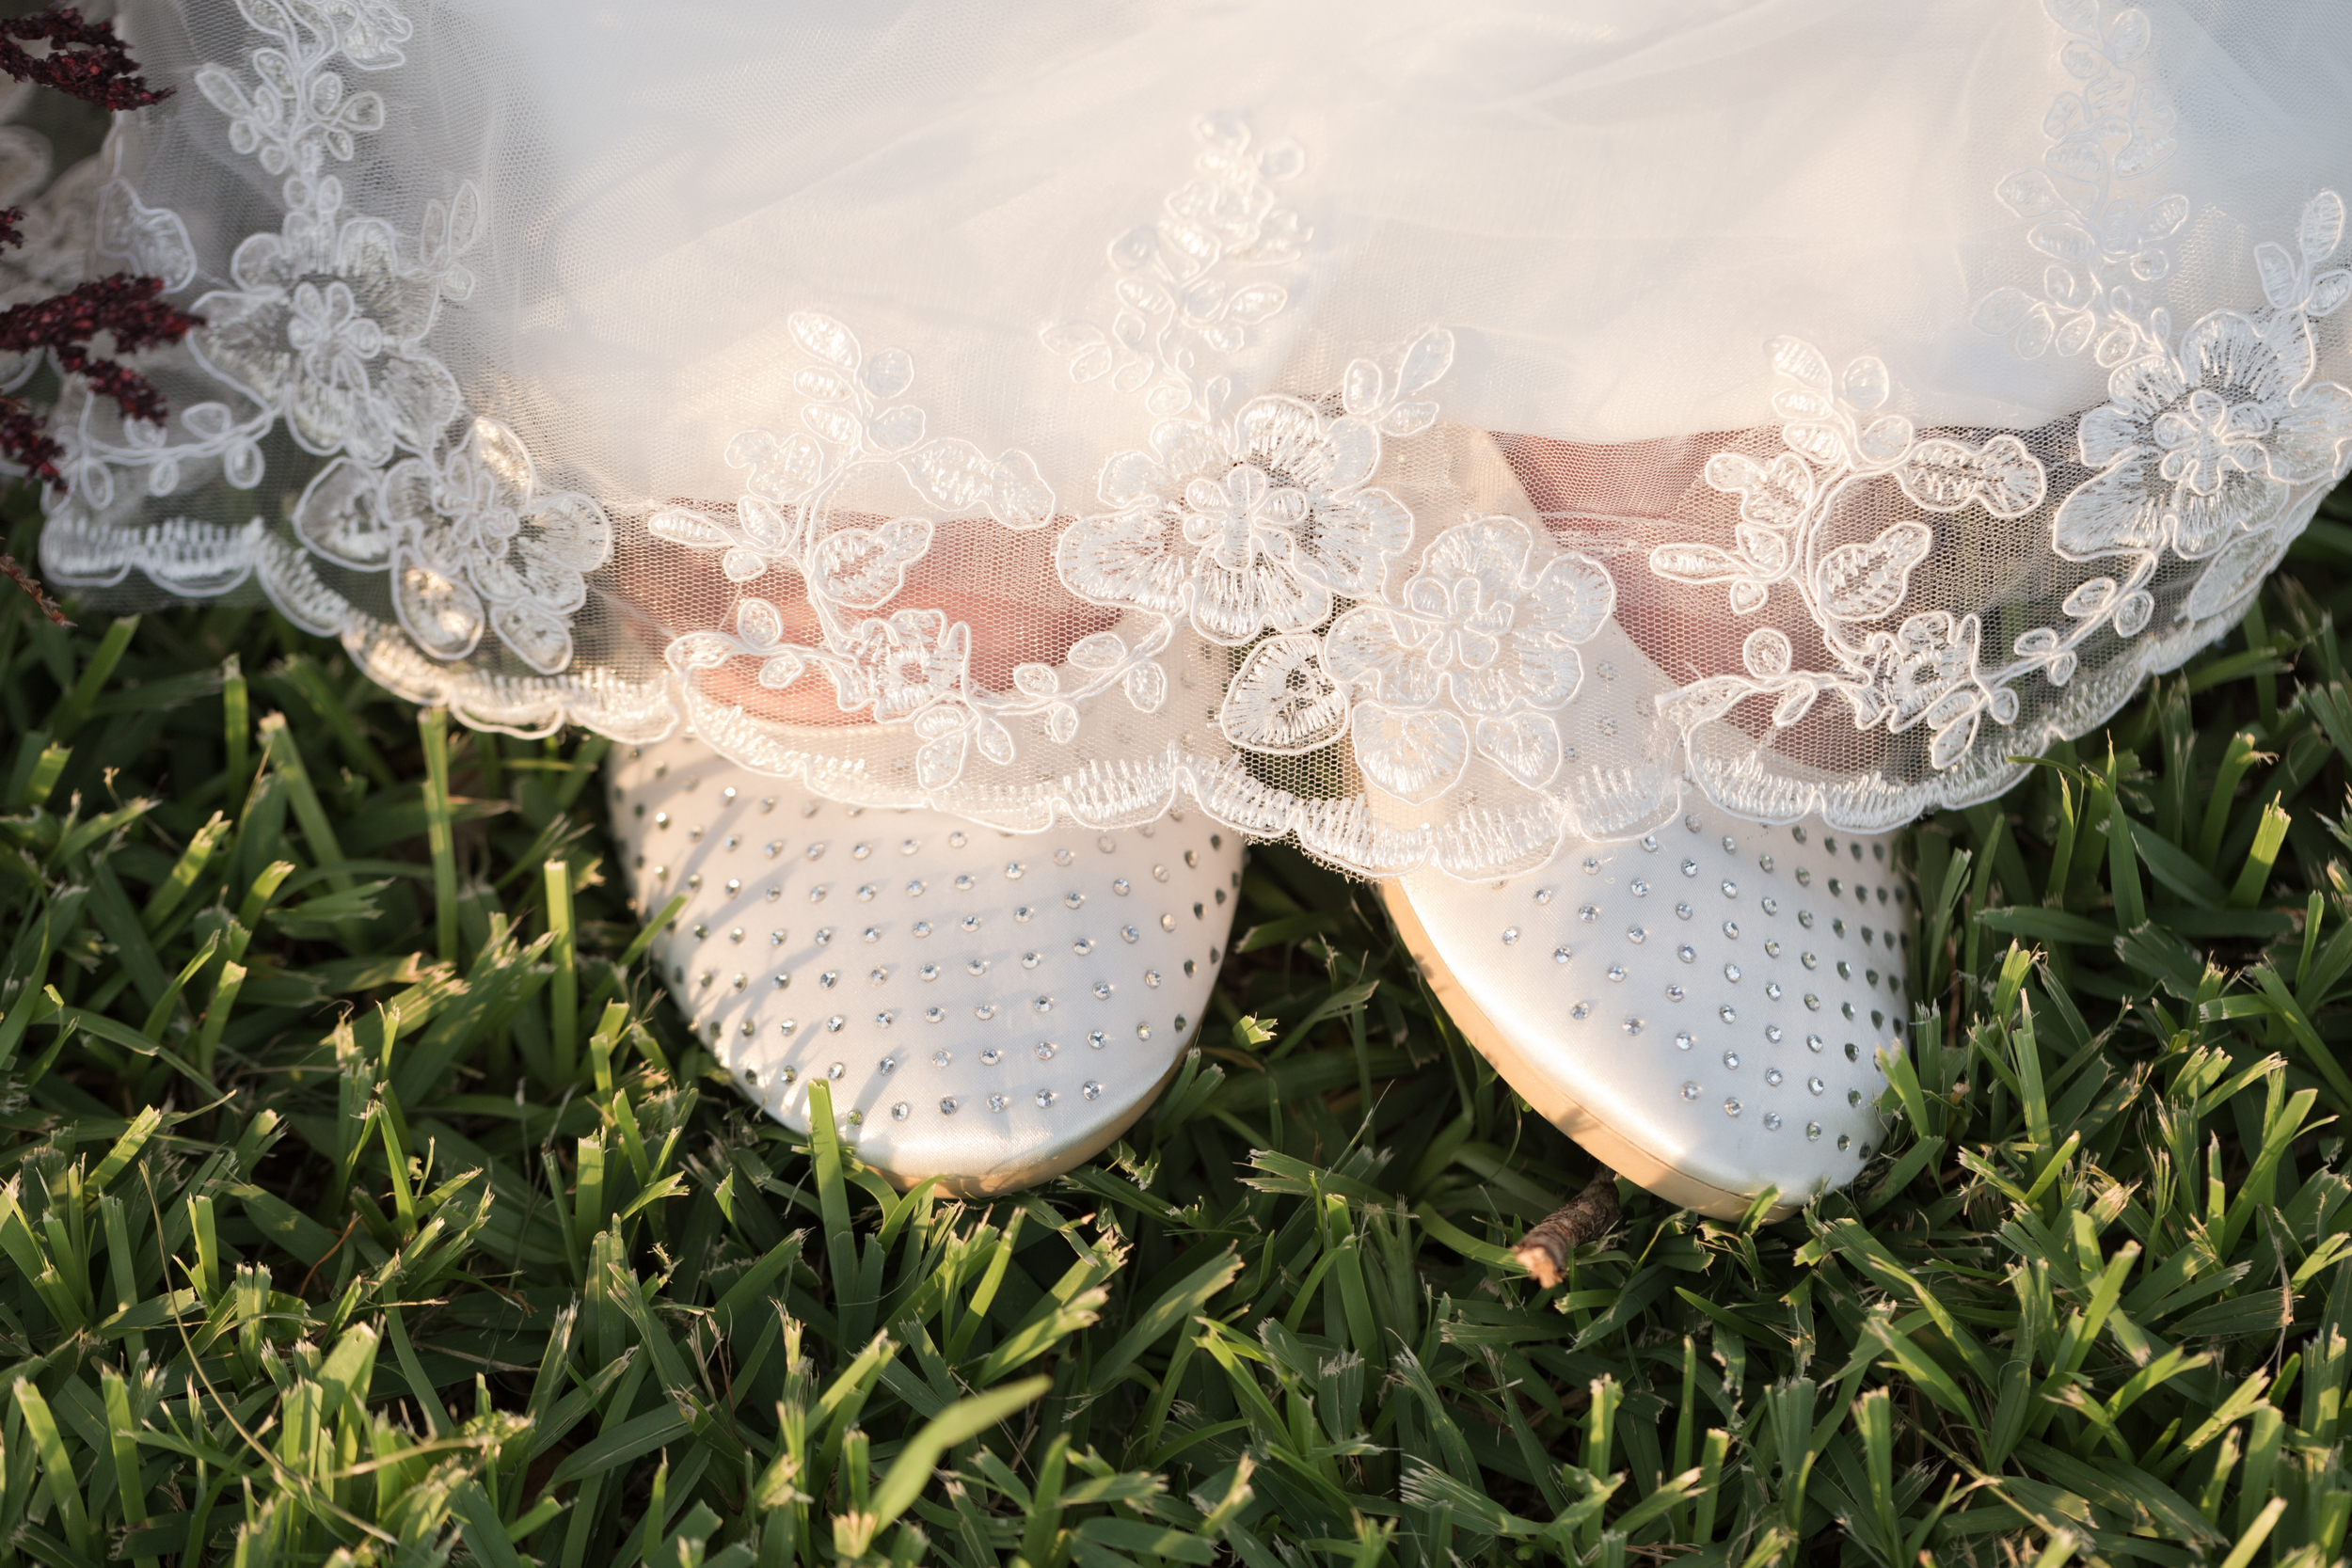 flat bridal shoes with rhinestones and lace veil in grass